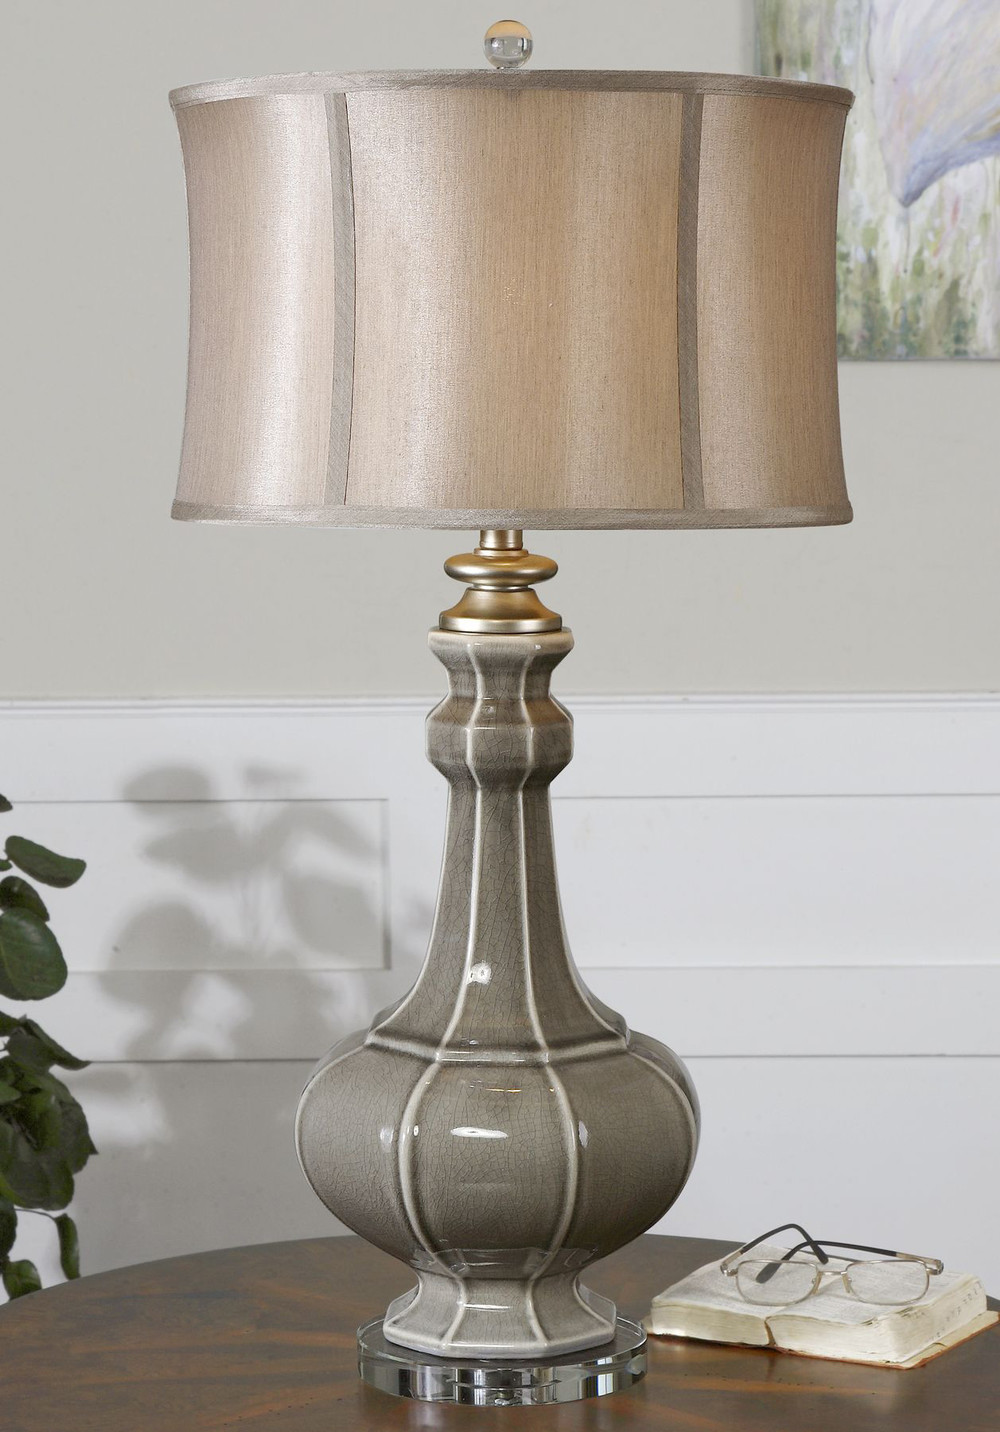 Racimo+Table+Lamp.jpg